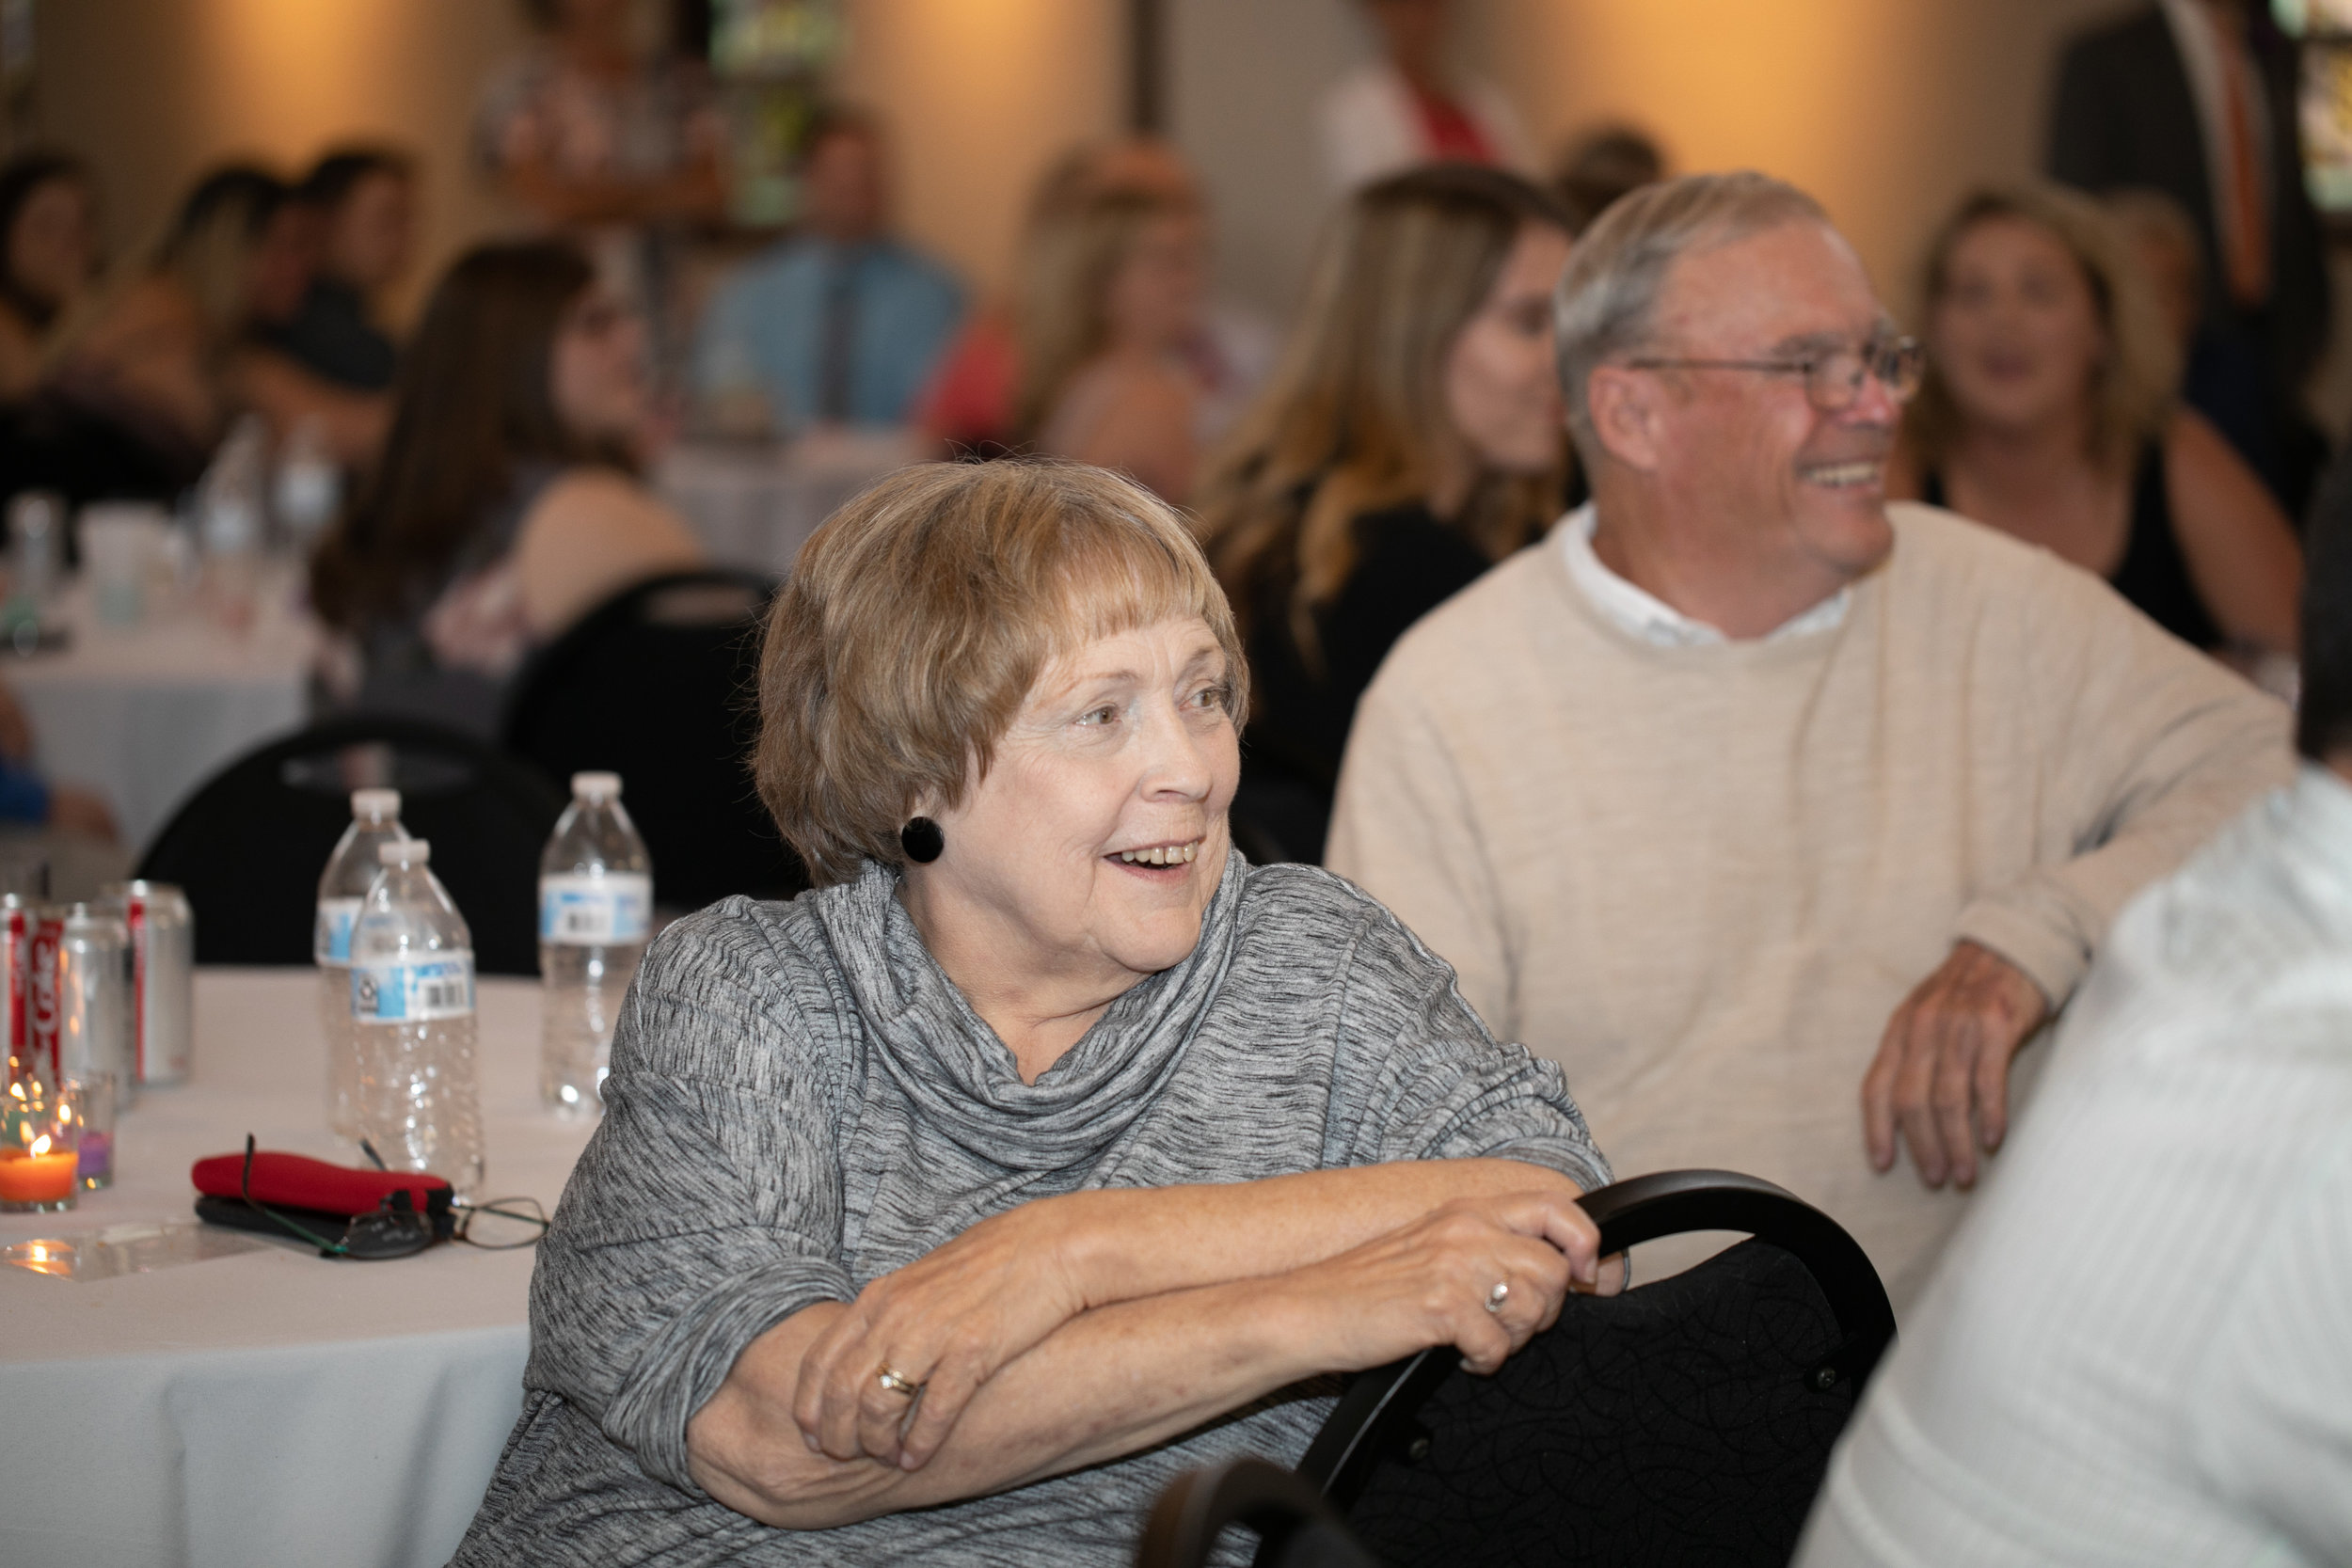 grandma laughing during toasts wedding photographers in St Paul